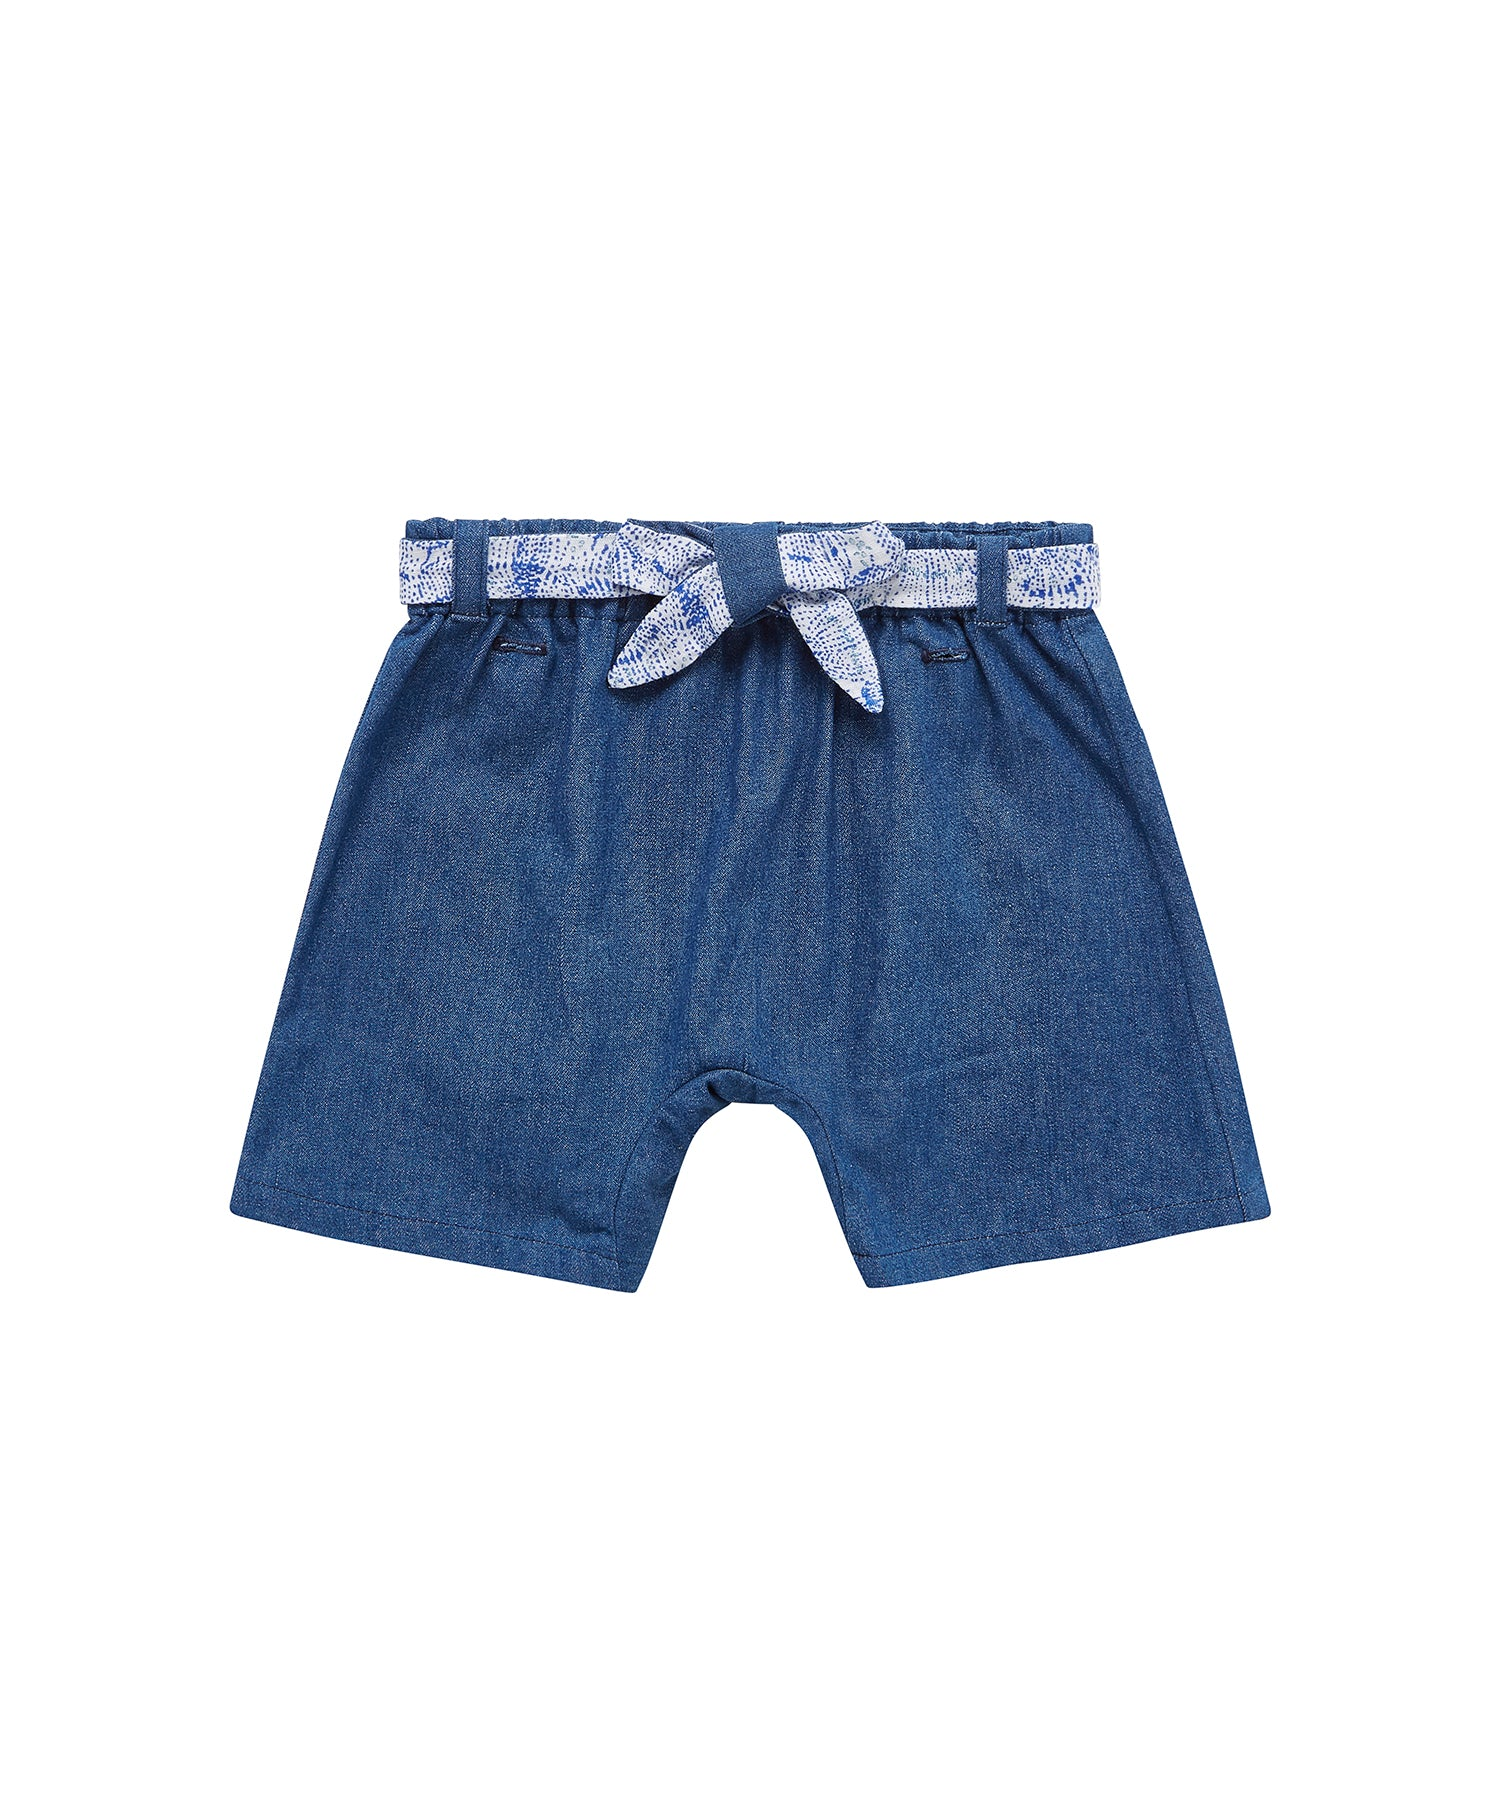 denim dungaree shorts kids